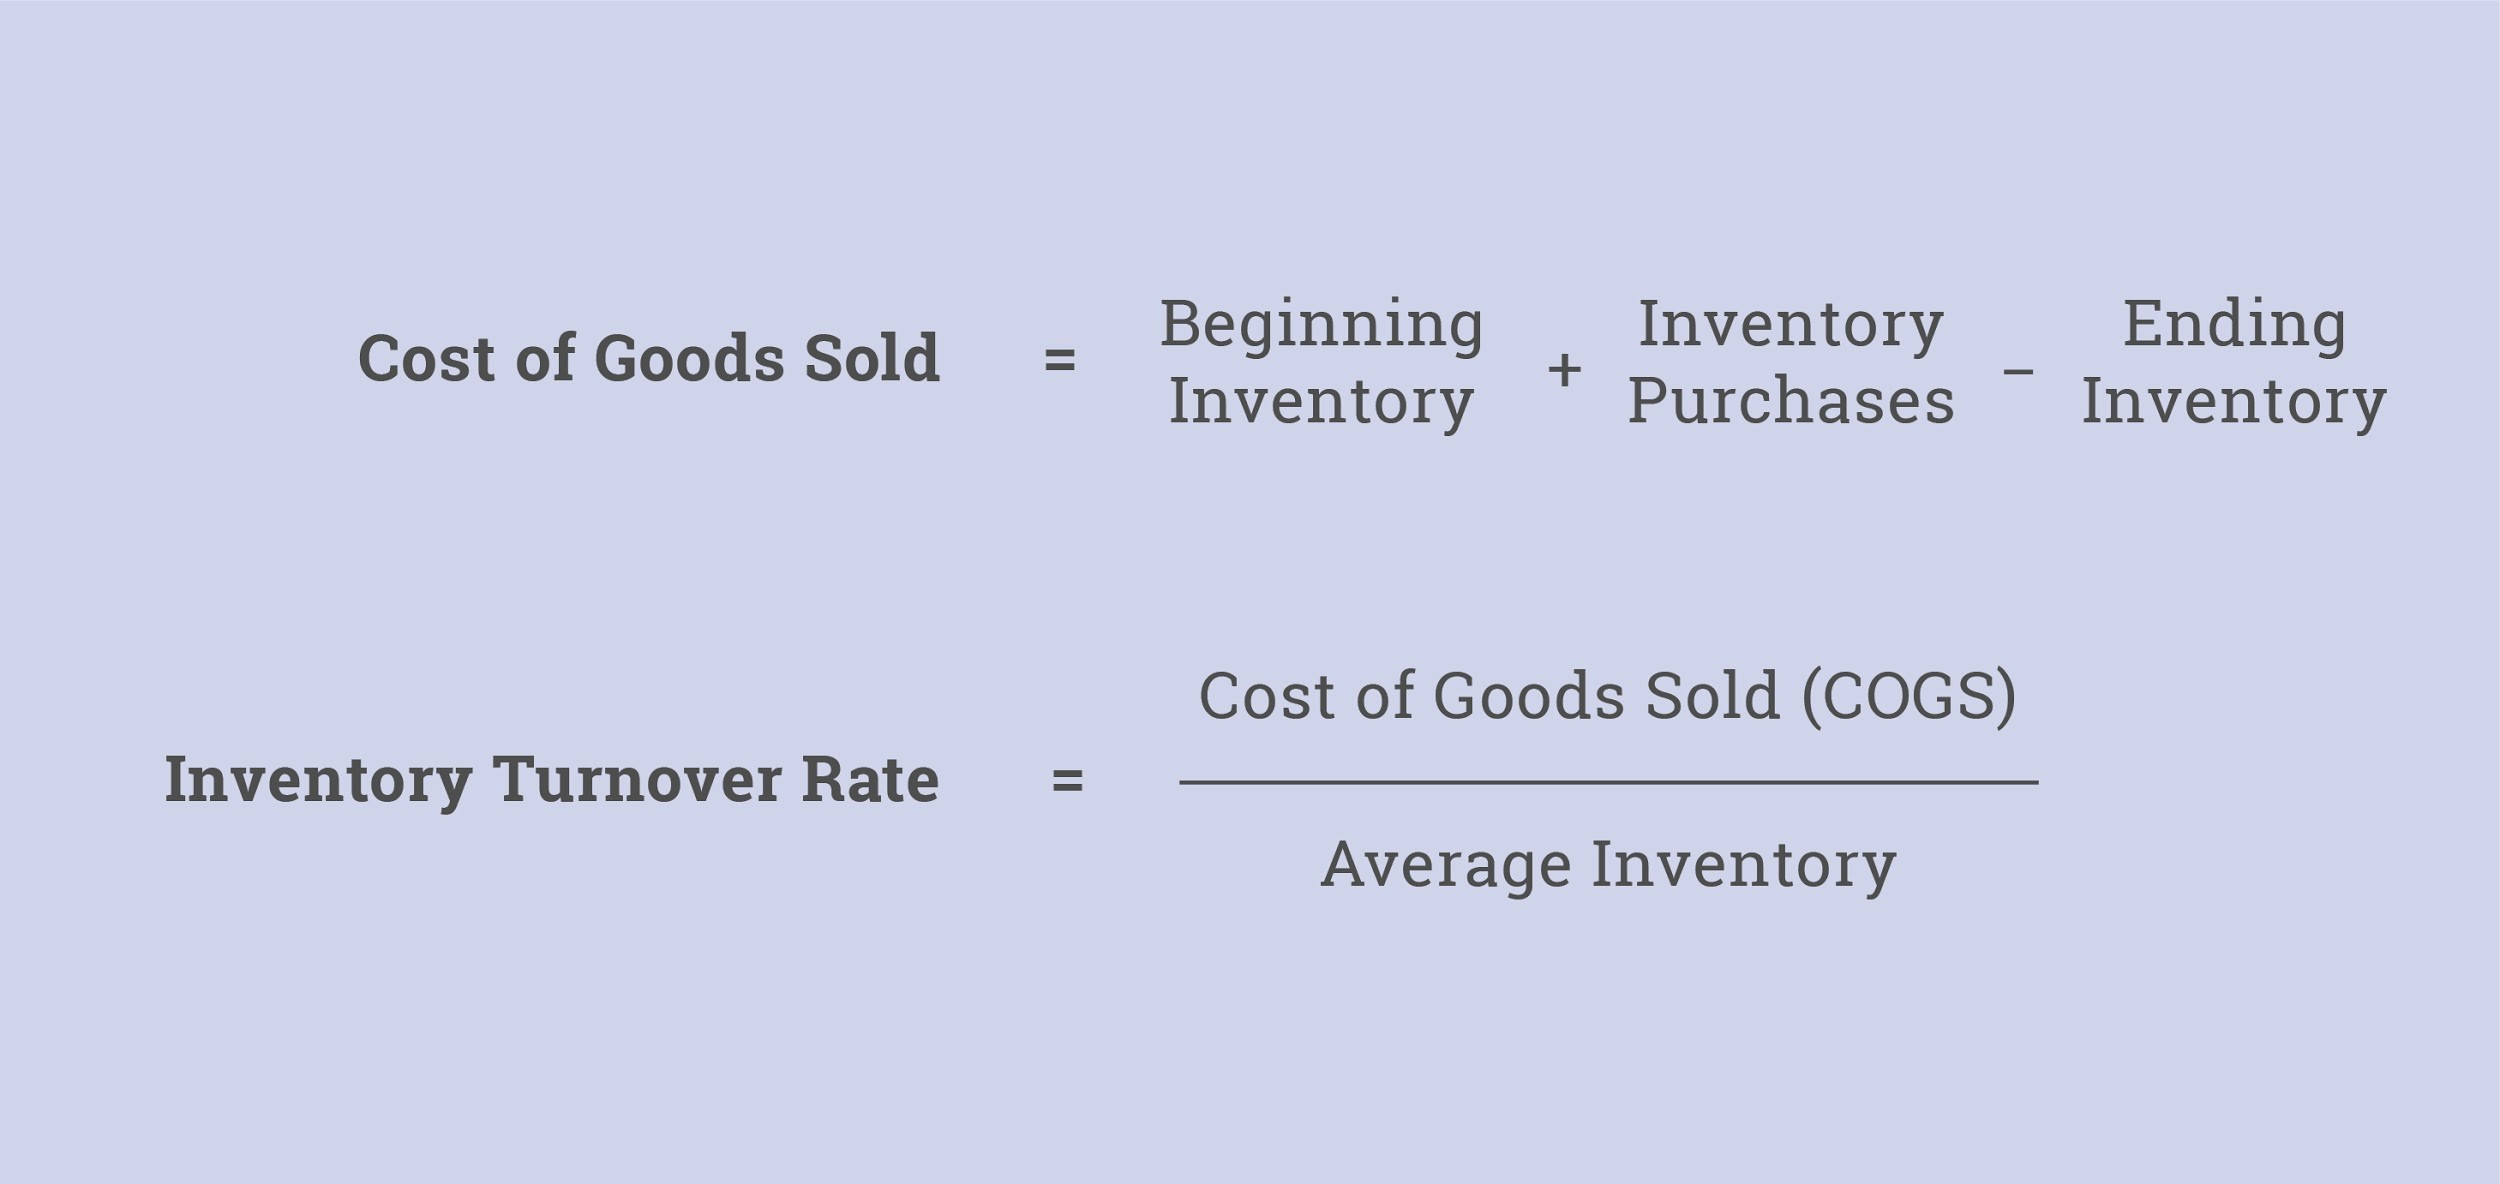 Cost of Good Sold and Inventory Turnover Rate Formula